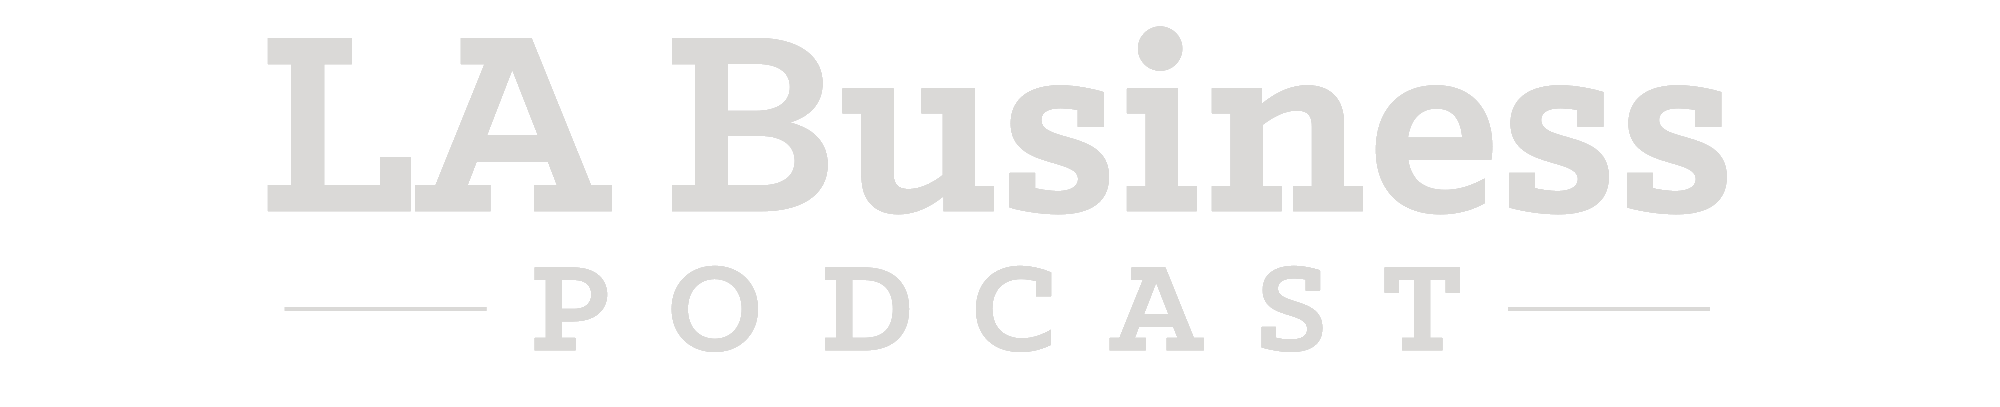 LA Business Podcast